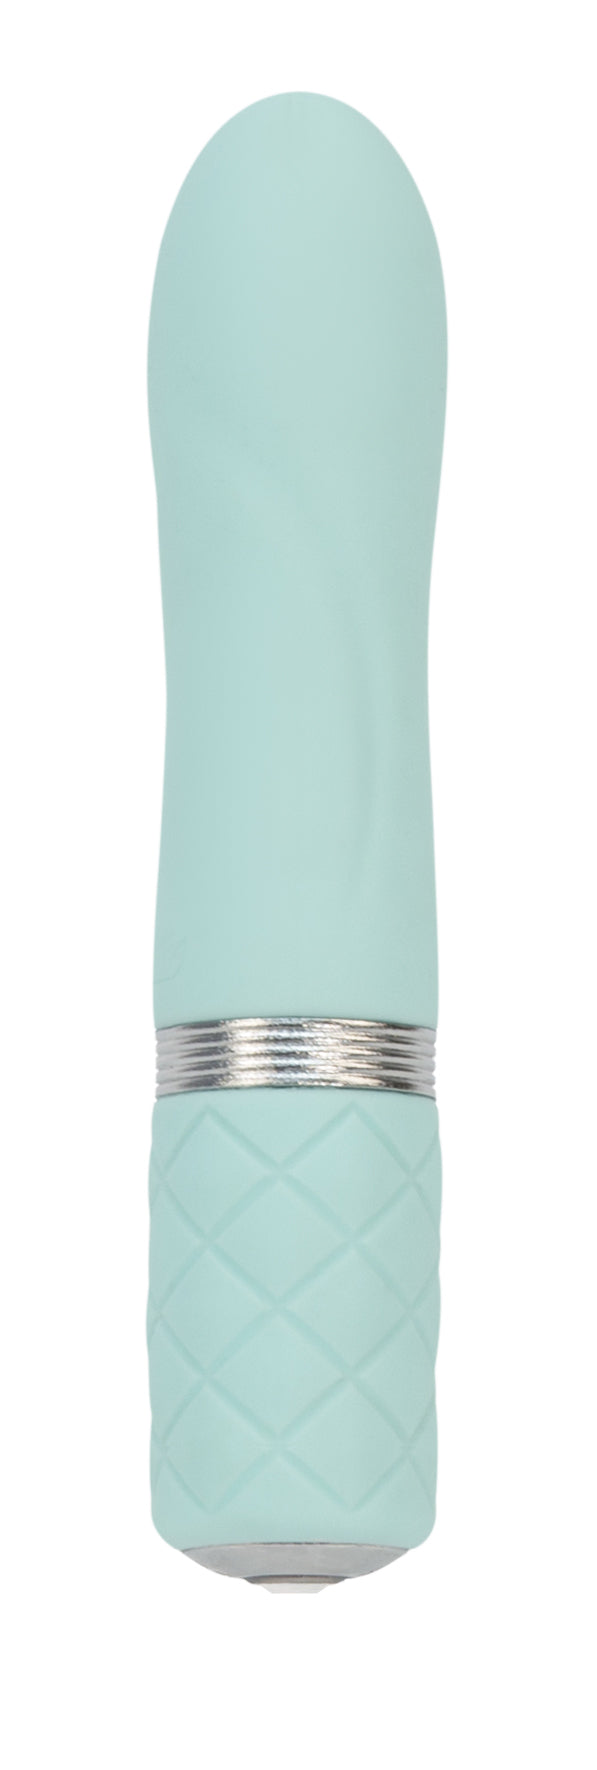 Pillow Talk Flirty Vibe  With Swarovski Crystal - Teal - My sheree and More